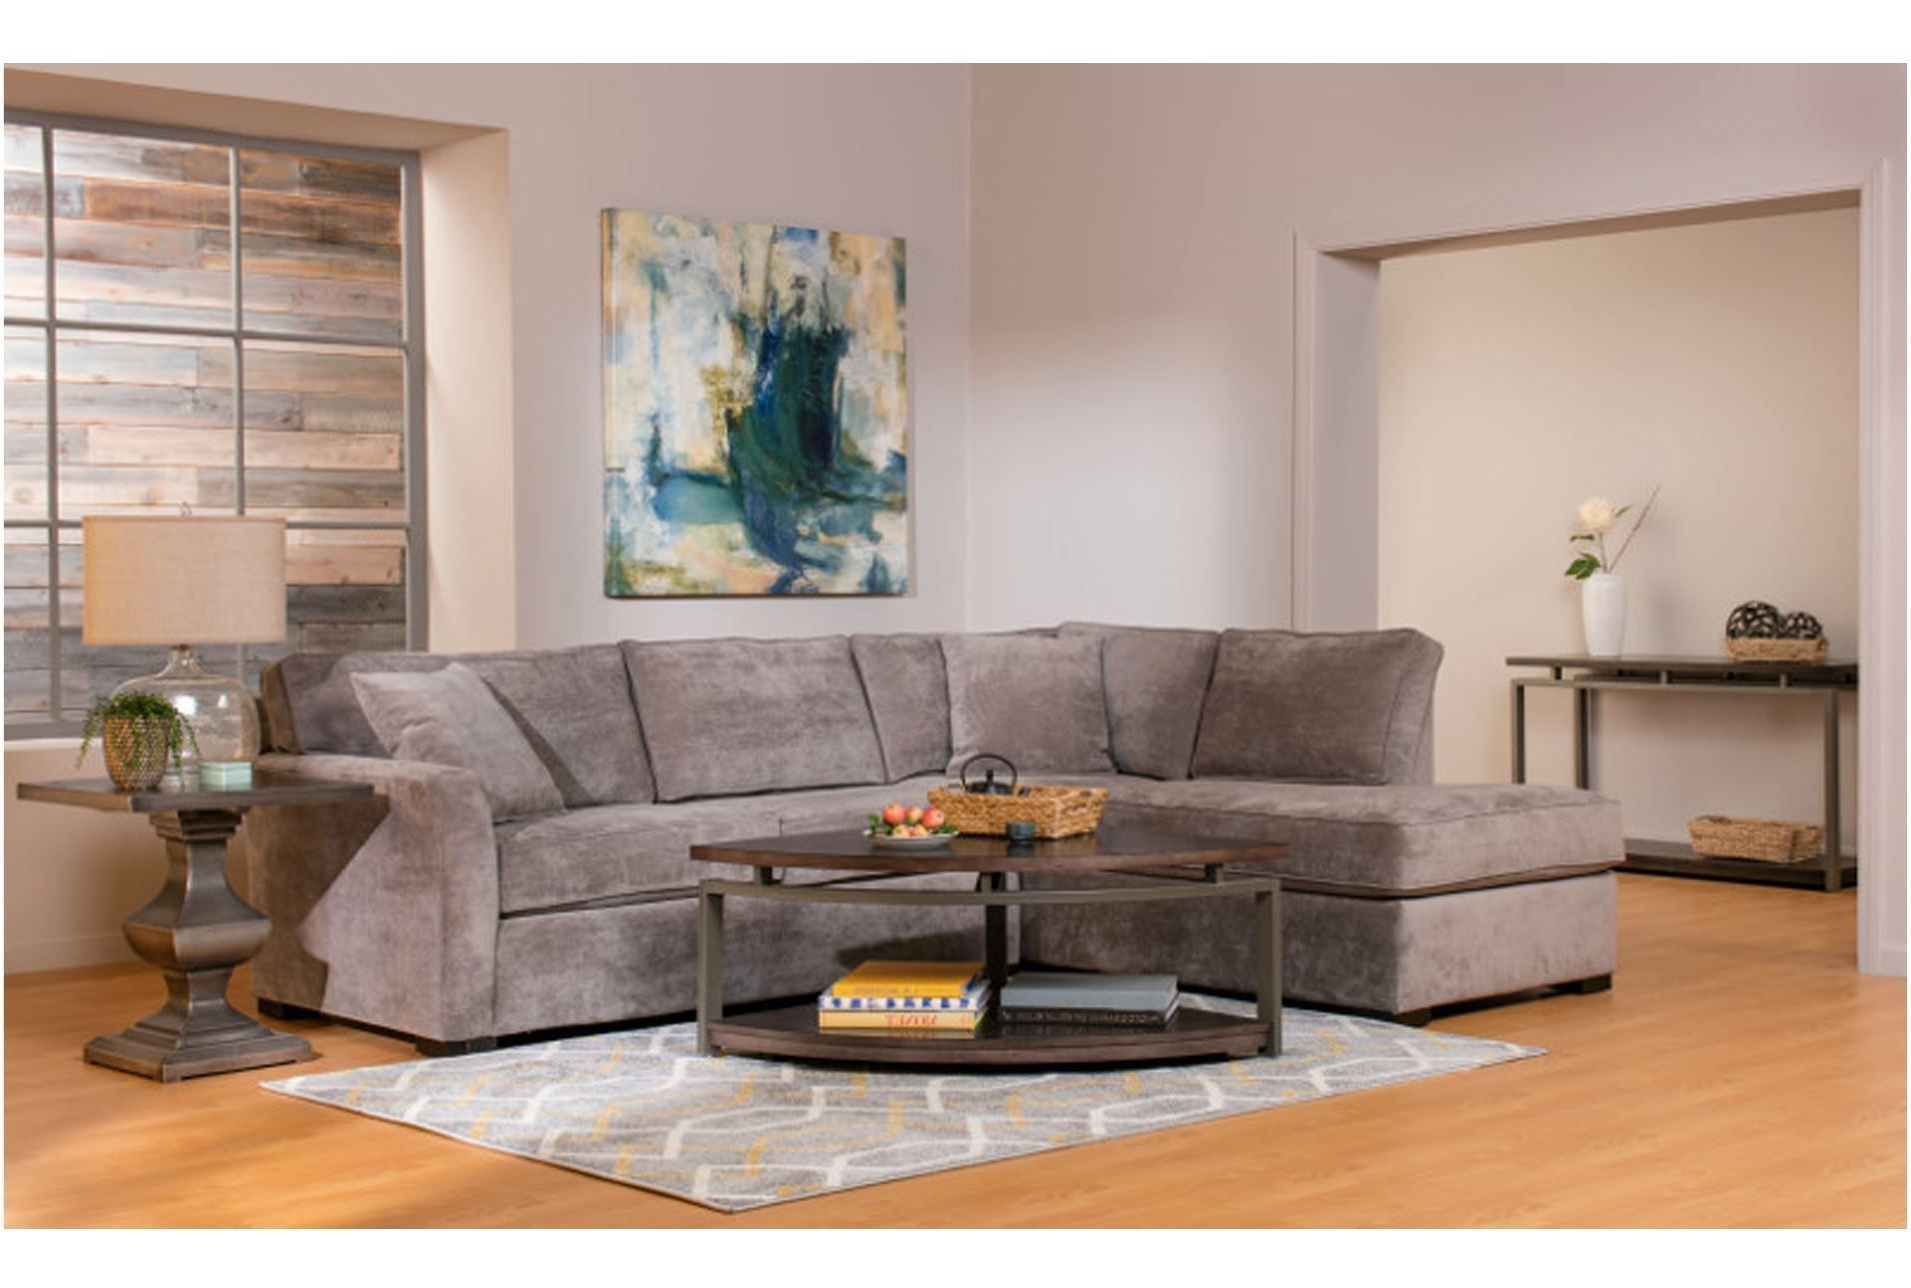 Home Decor Ideas For Aspen 2 Piece Sectionals With Laf Chaise (View 14 of 20)